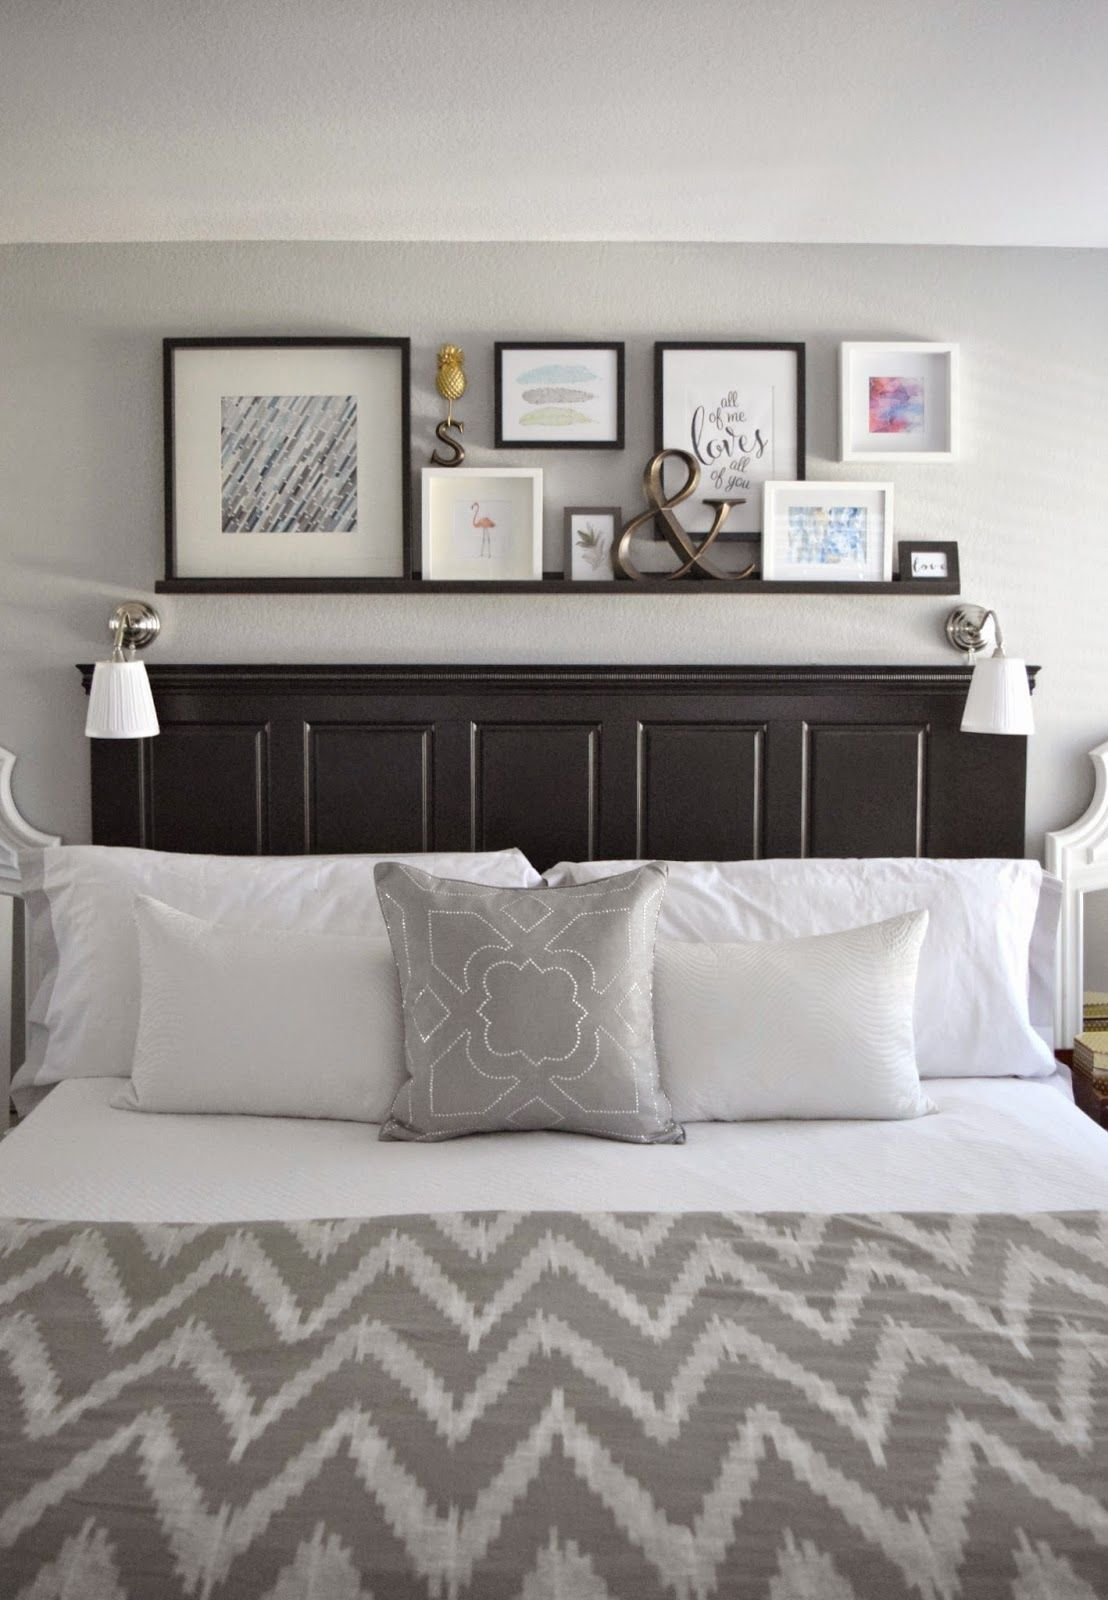 20 decorating tricks for your bedroom in 2019 home decor - Bedroom wall shelves decorating ideas ...